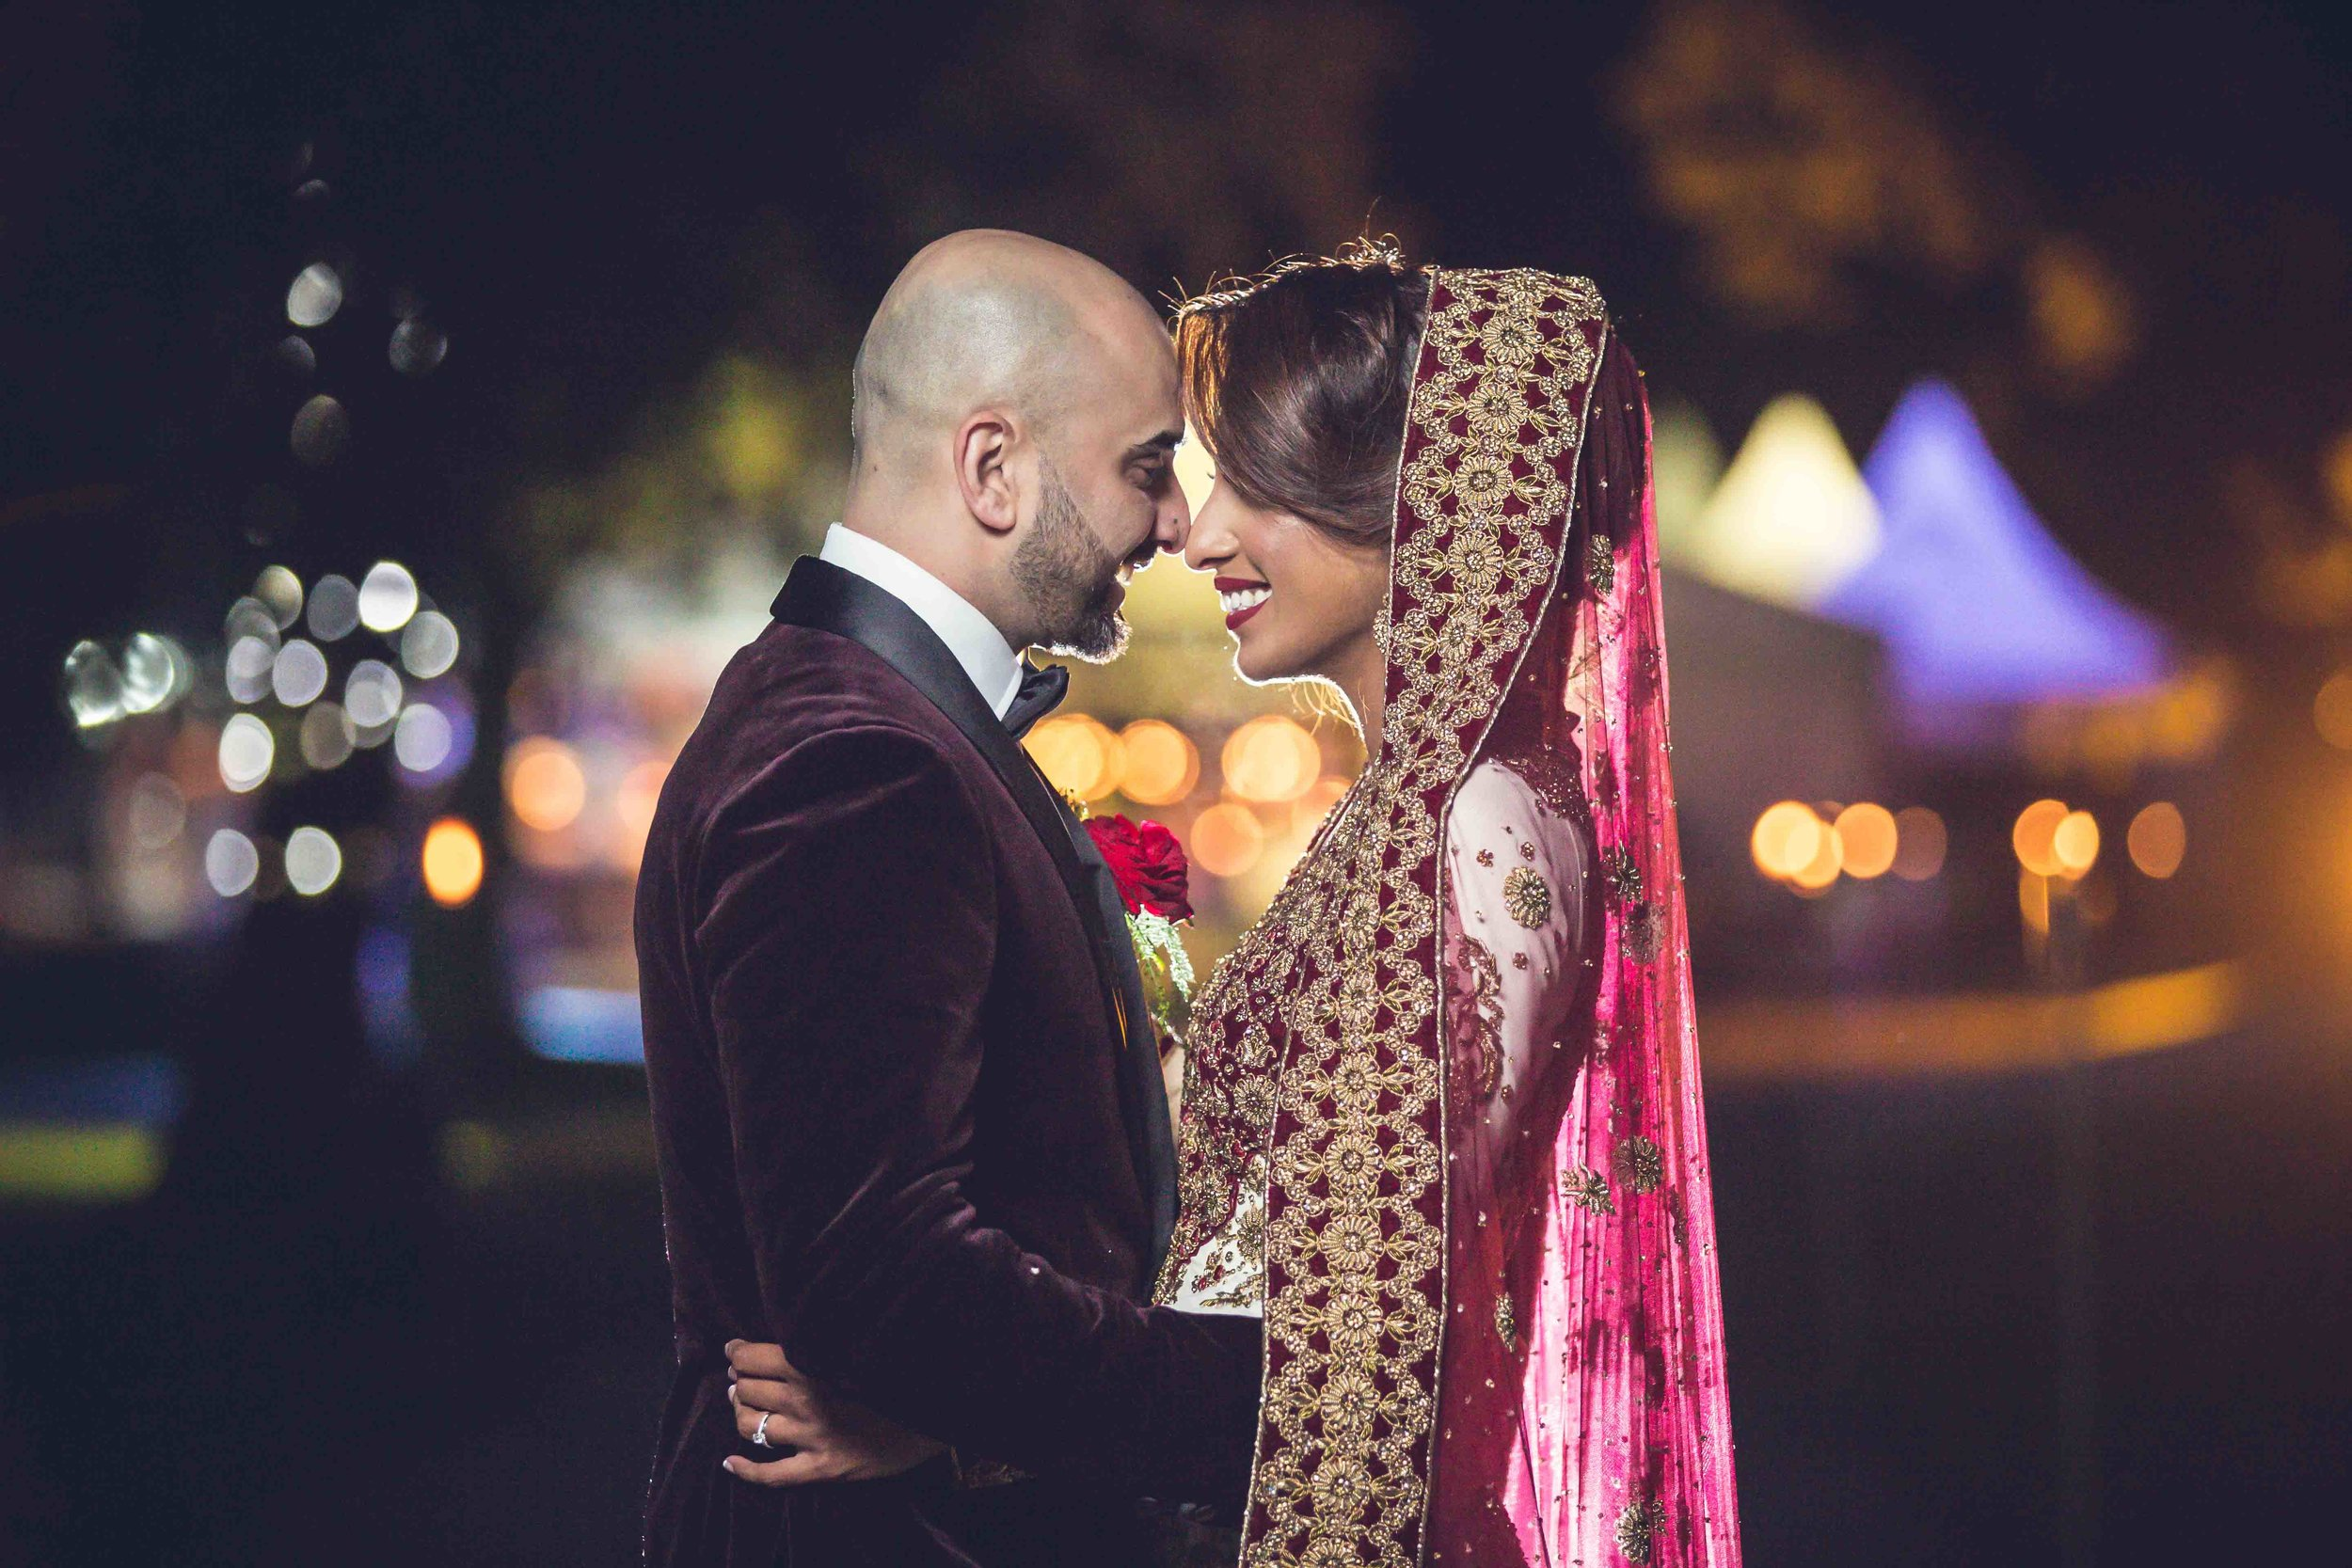 Opu Sultan Photography Asian wedding photography scotland edinburgh glasgow manchester birmingham london-202.jpg